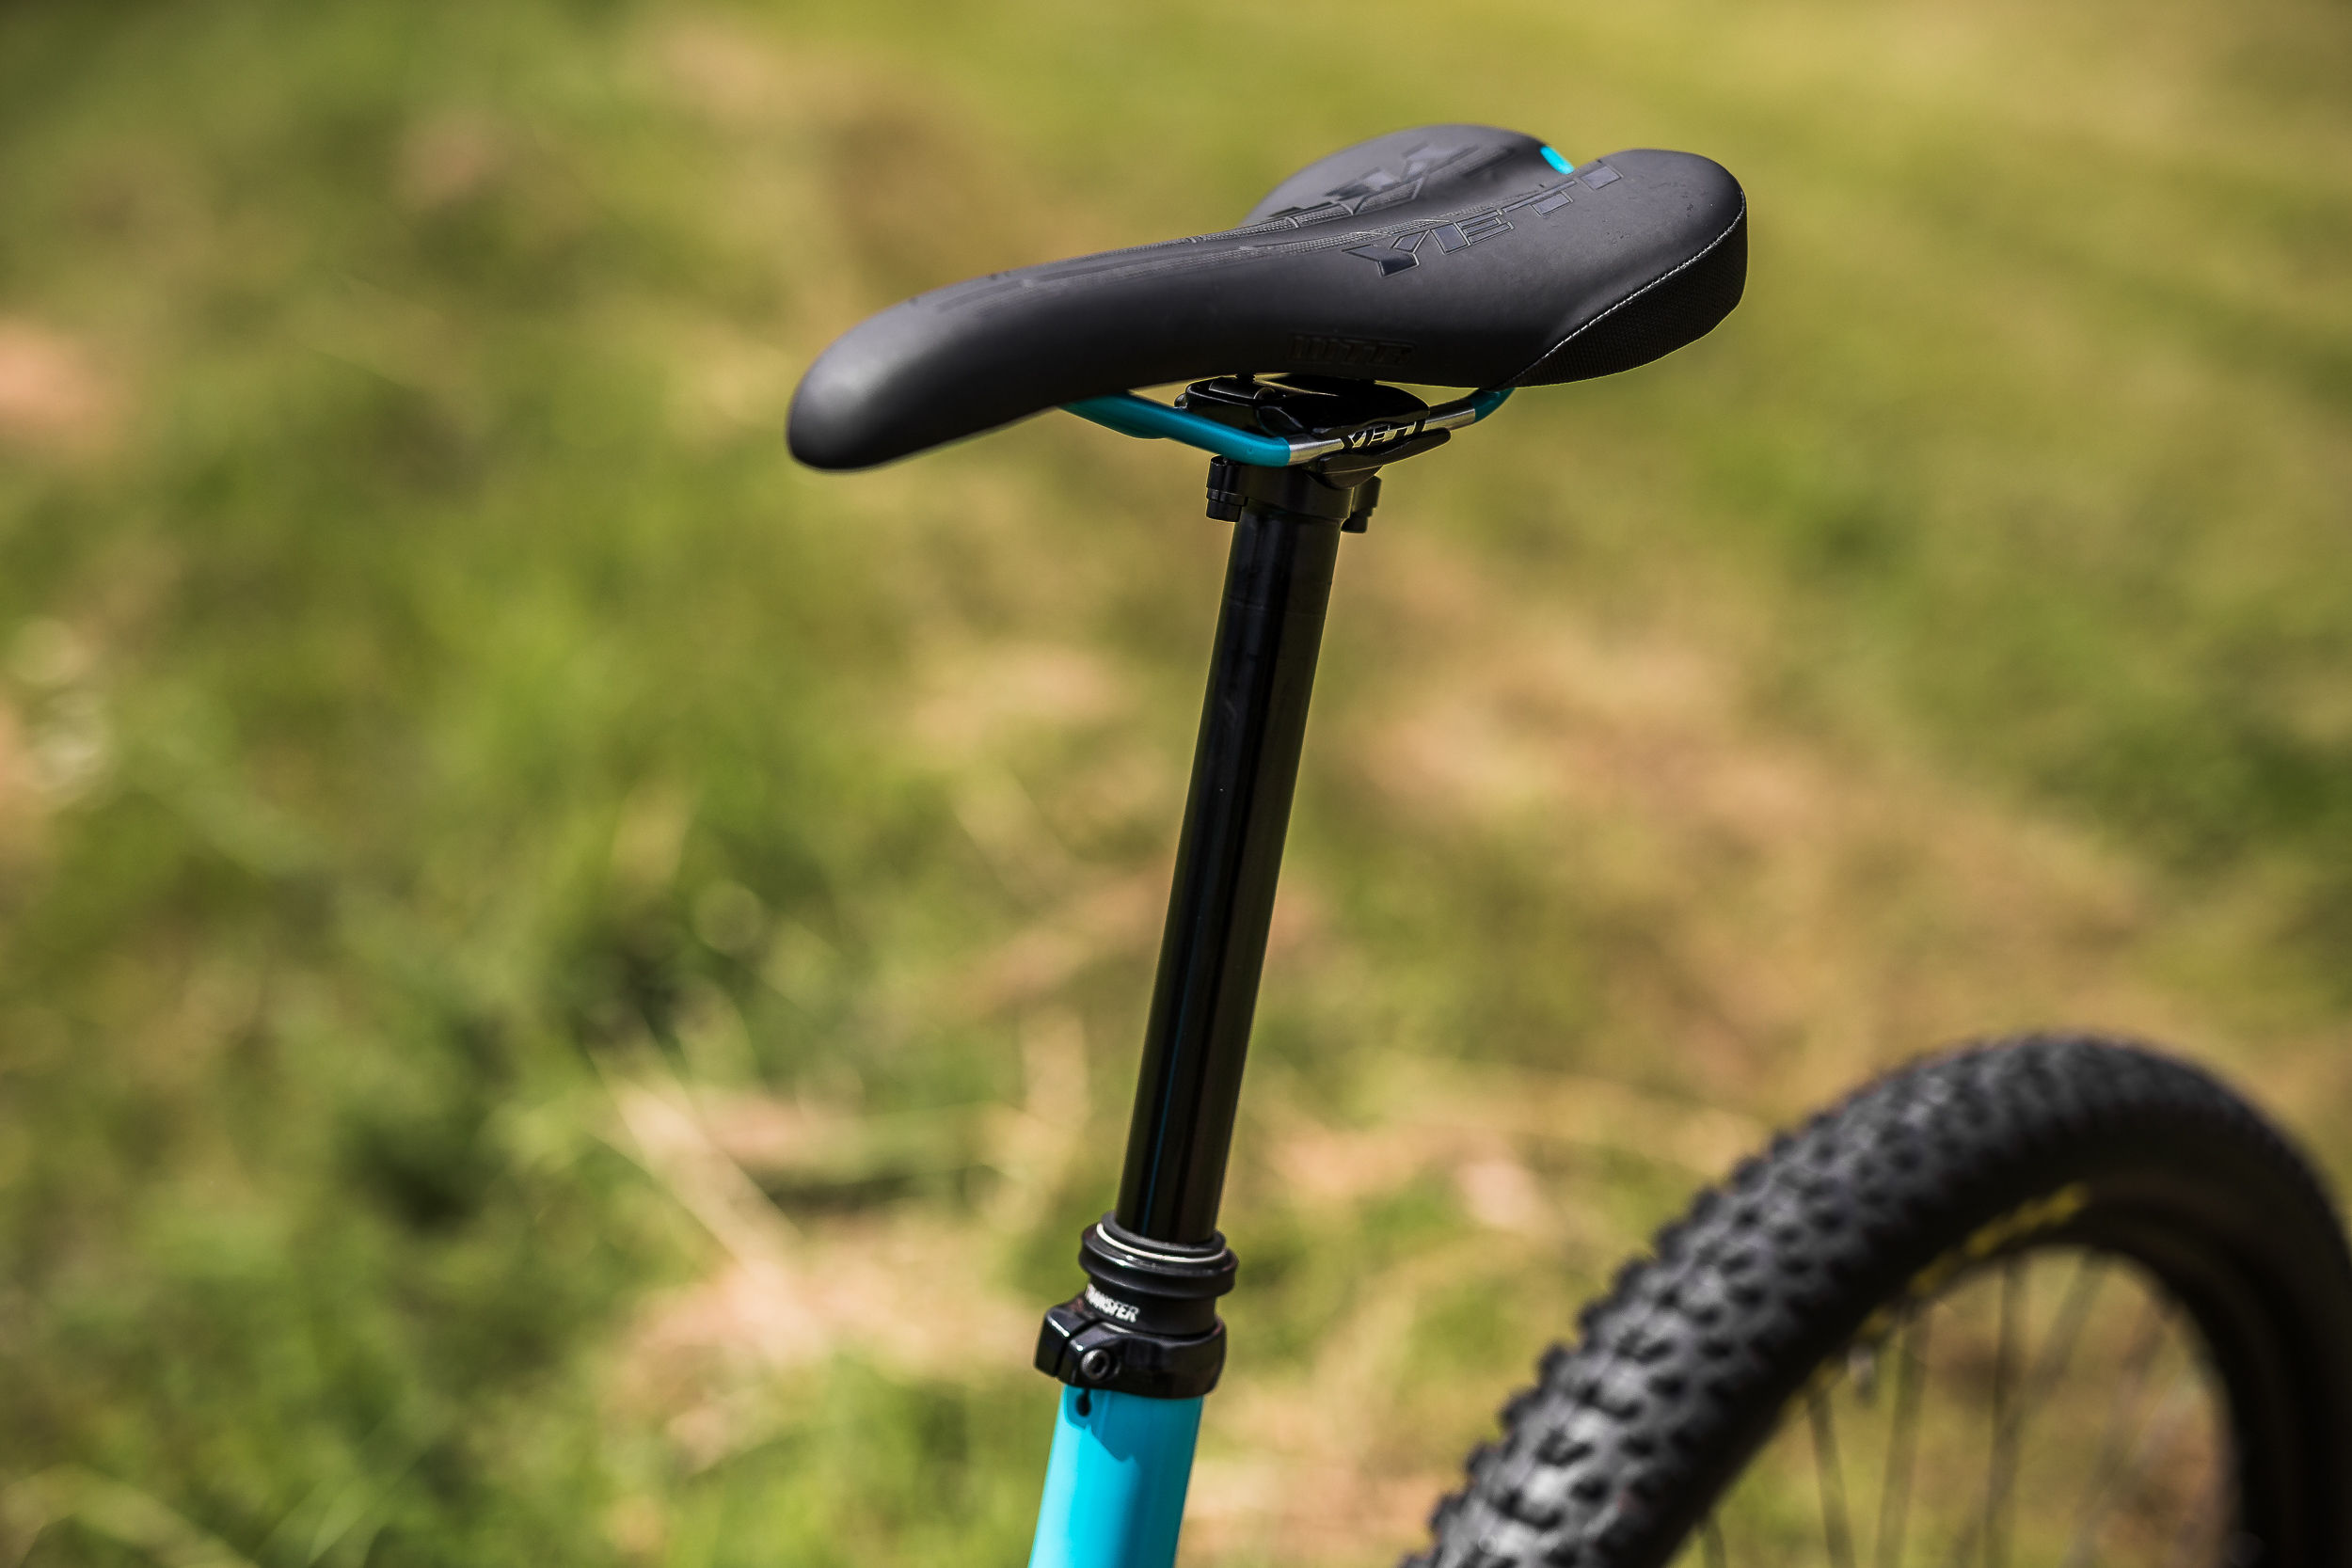 All size L and XL frames come with long travel 175mm dropper posts.